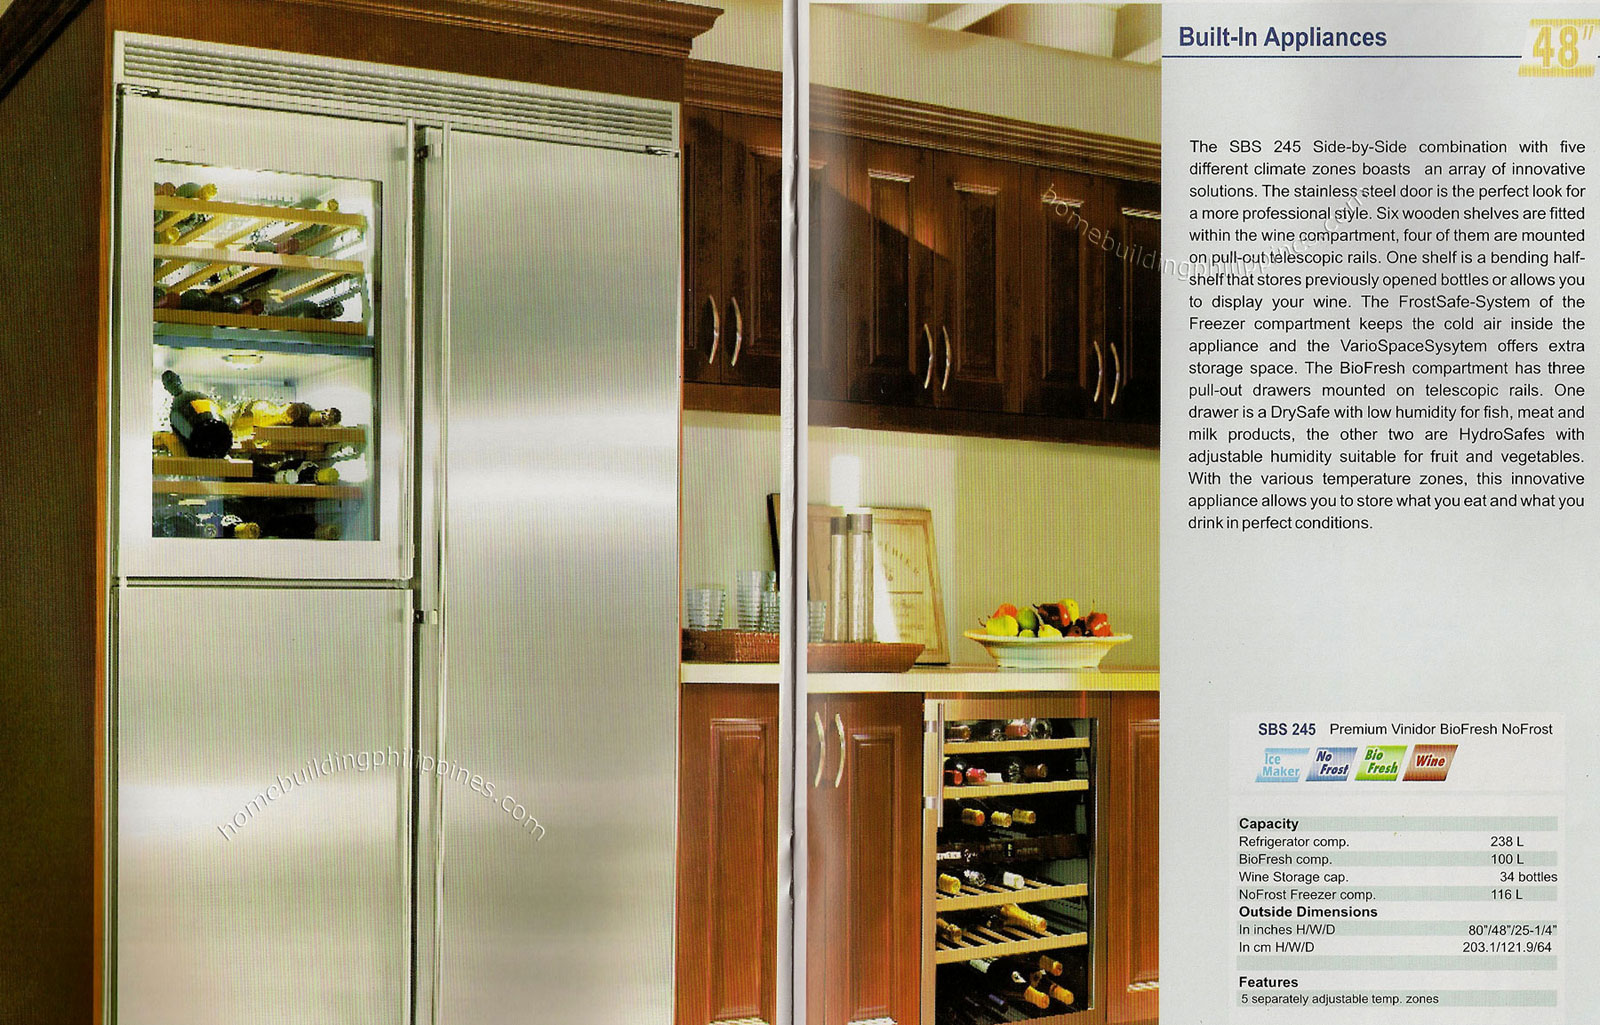 Built-in refrigerators: sizes, technical features 42